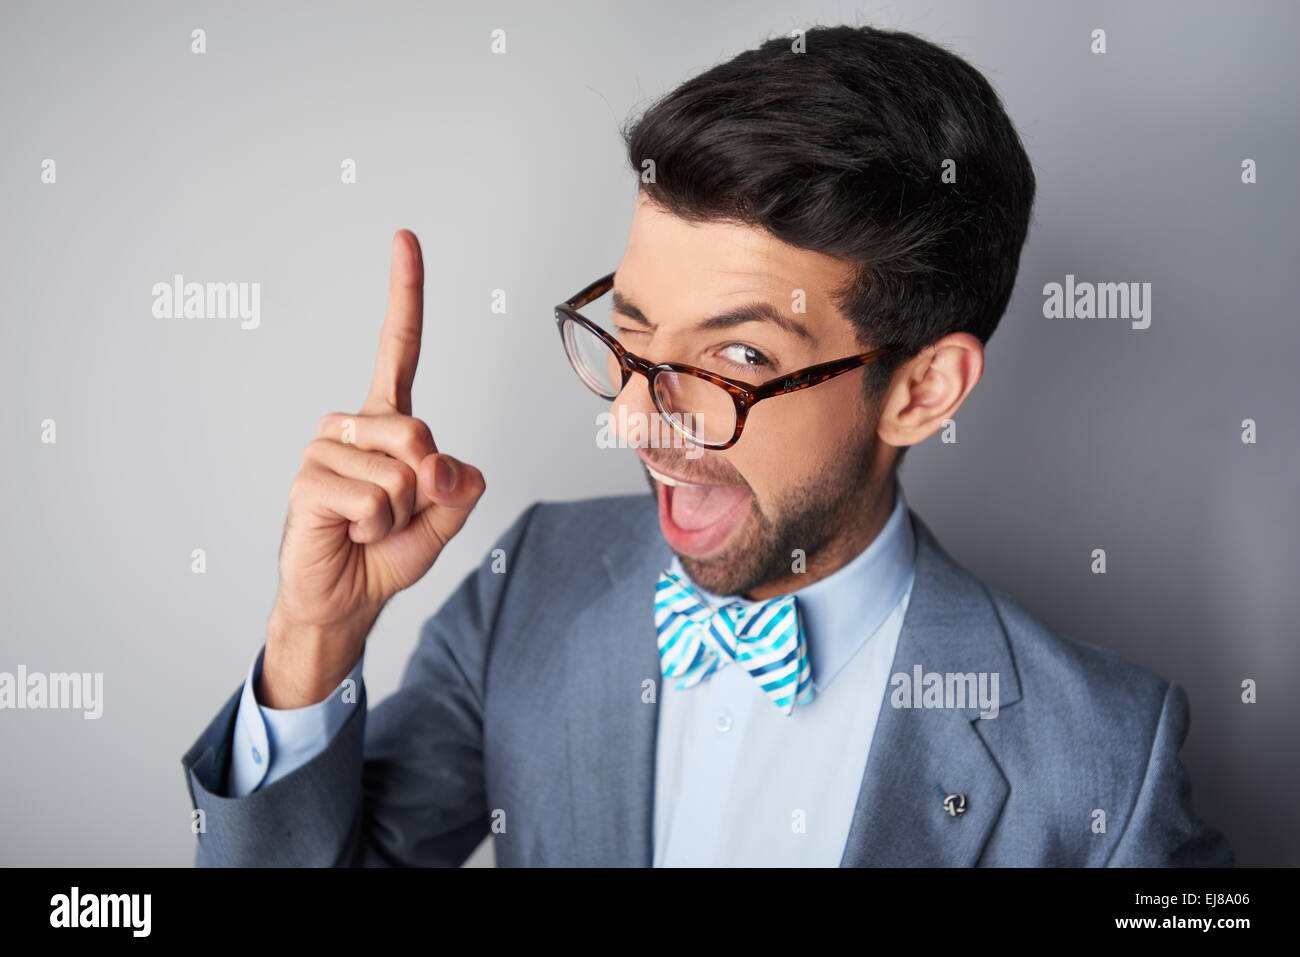 Funny young man with glasses and jacke winking - Stock Image